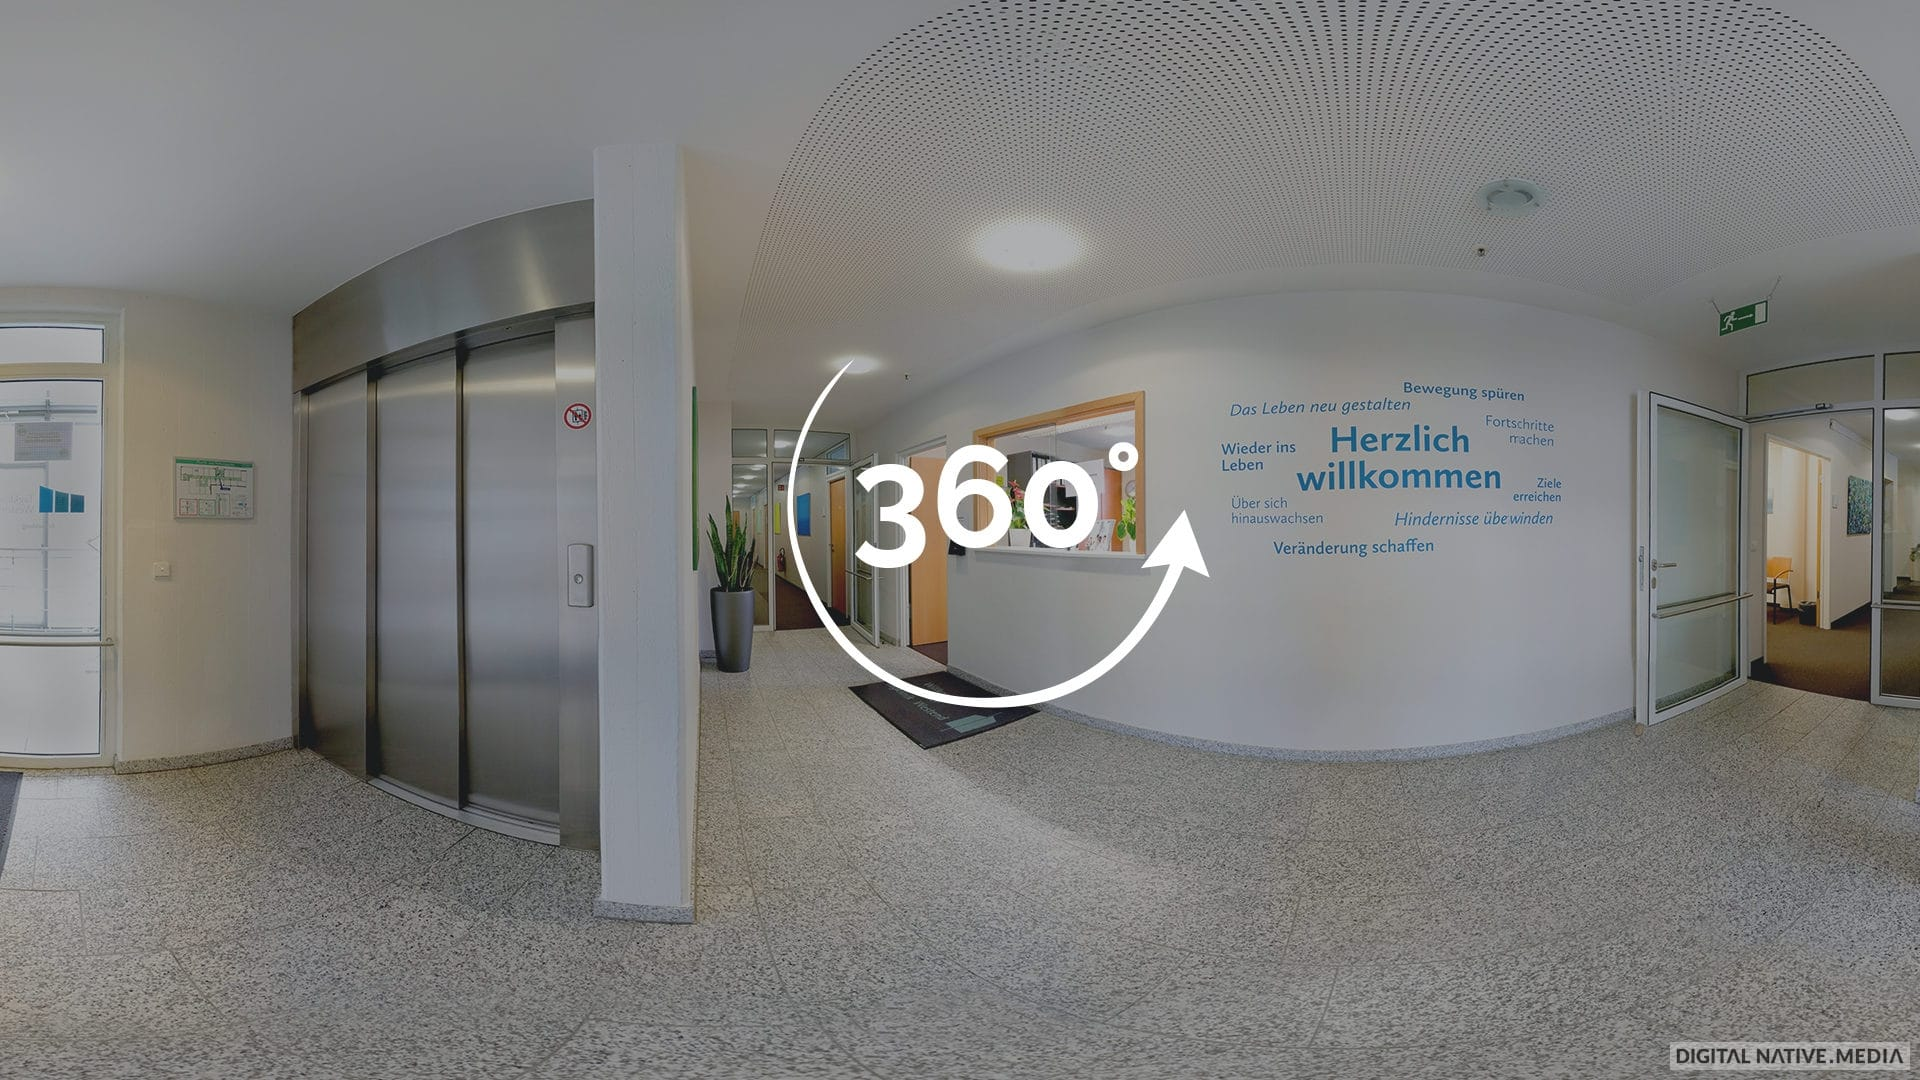 360°-Video der Tagesklinik Westend in München. Gedreht von Digital Native Media